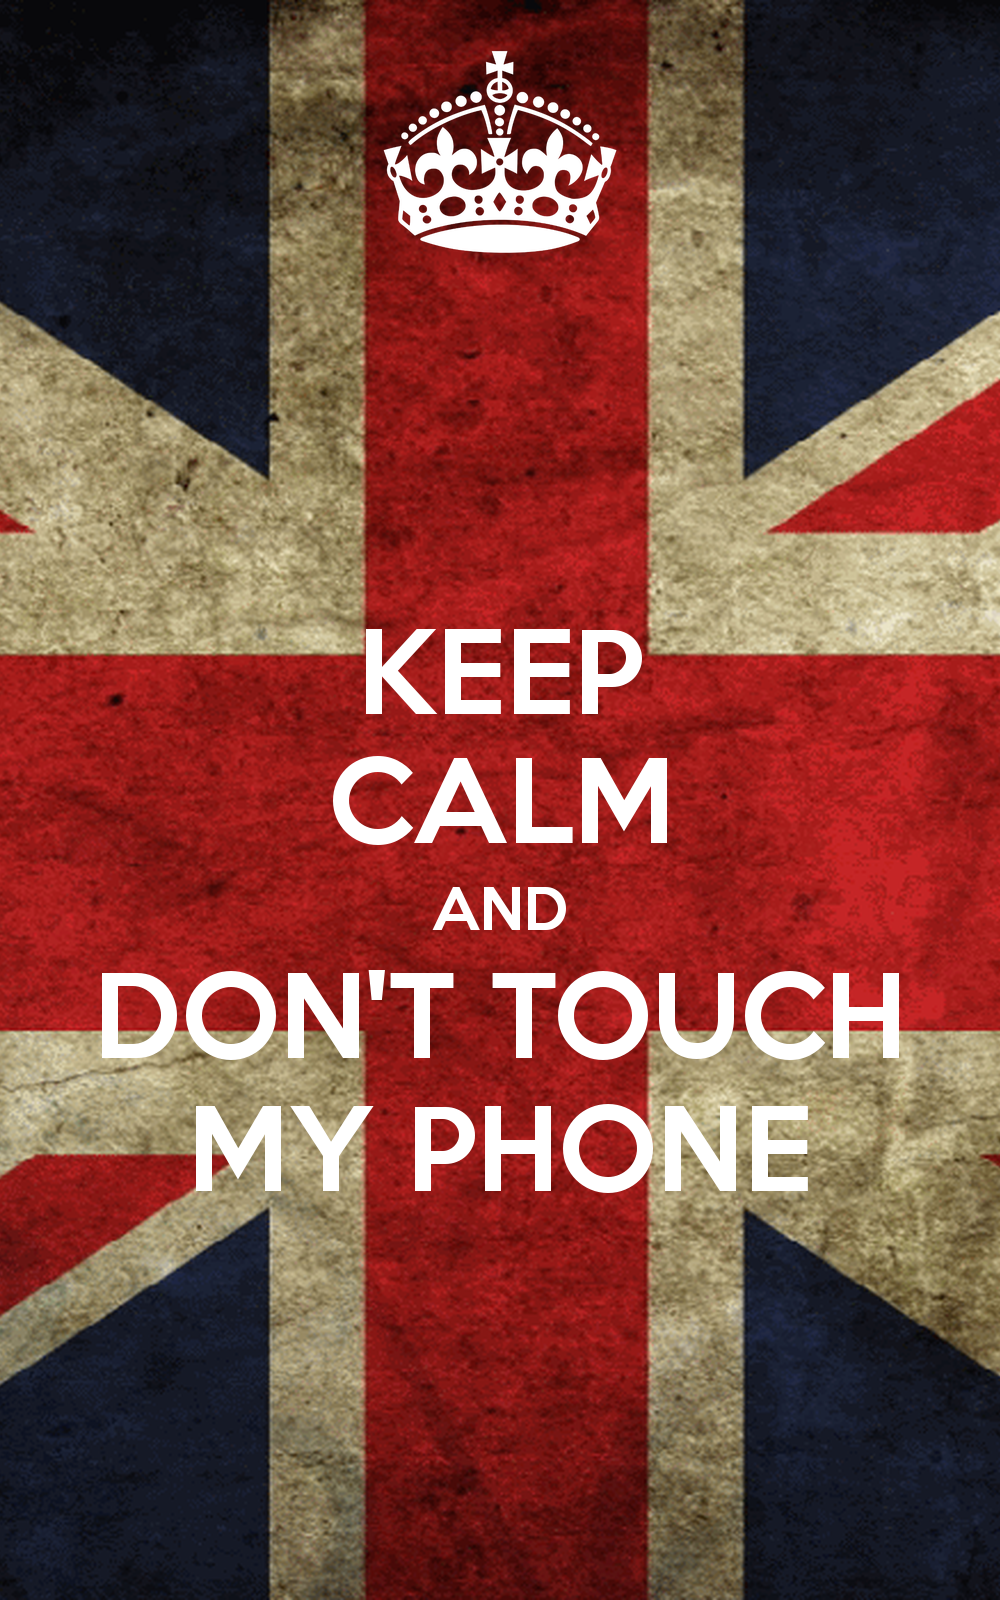 don't touch my phone Buscar con Google Fondos